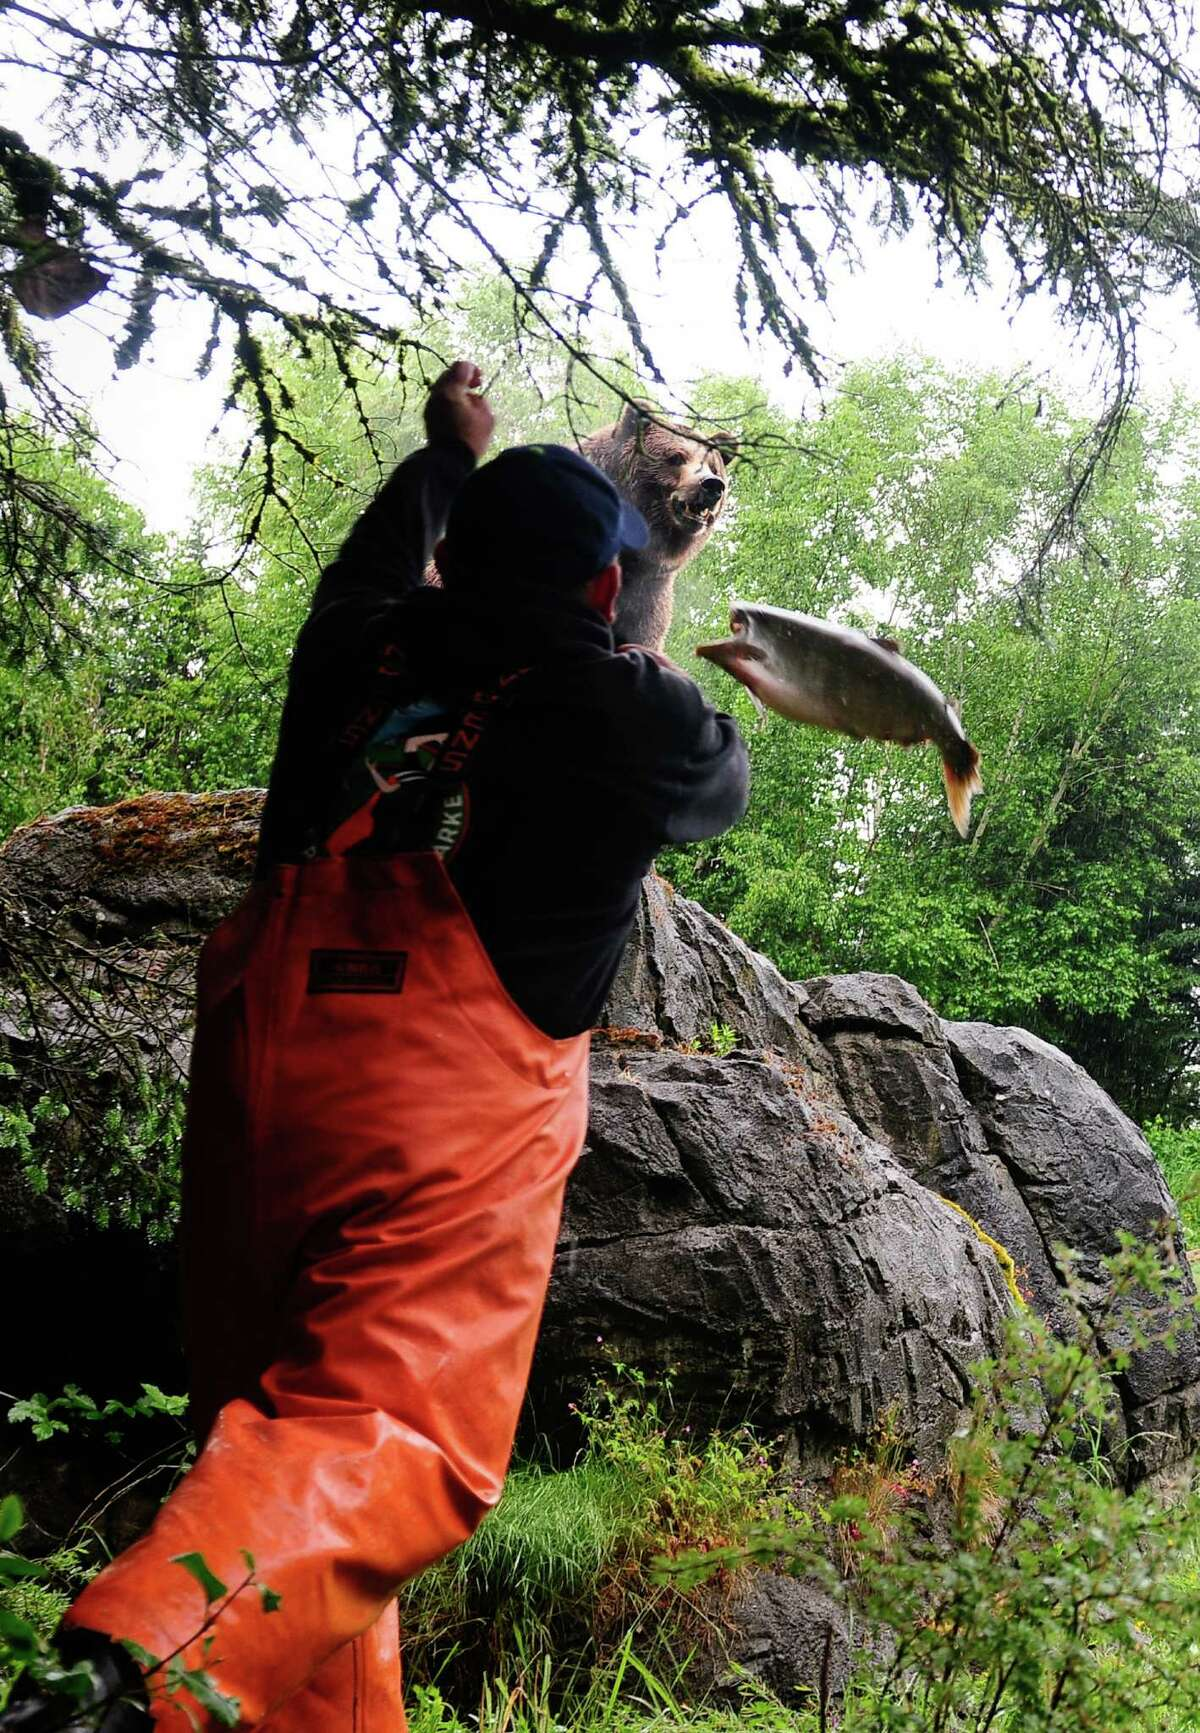 Fishmonger Chris Bell tosses a salmon to Woodland Park Zoo's 800-lb grizzly bear brothers, Keema and Denali, on Thursday, June 7, 2012. The event was held to usher in the zoo's annual Bear Affair & Big Howl for Wolves event happening on June 9.